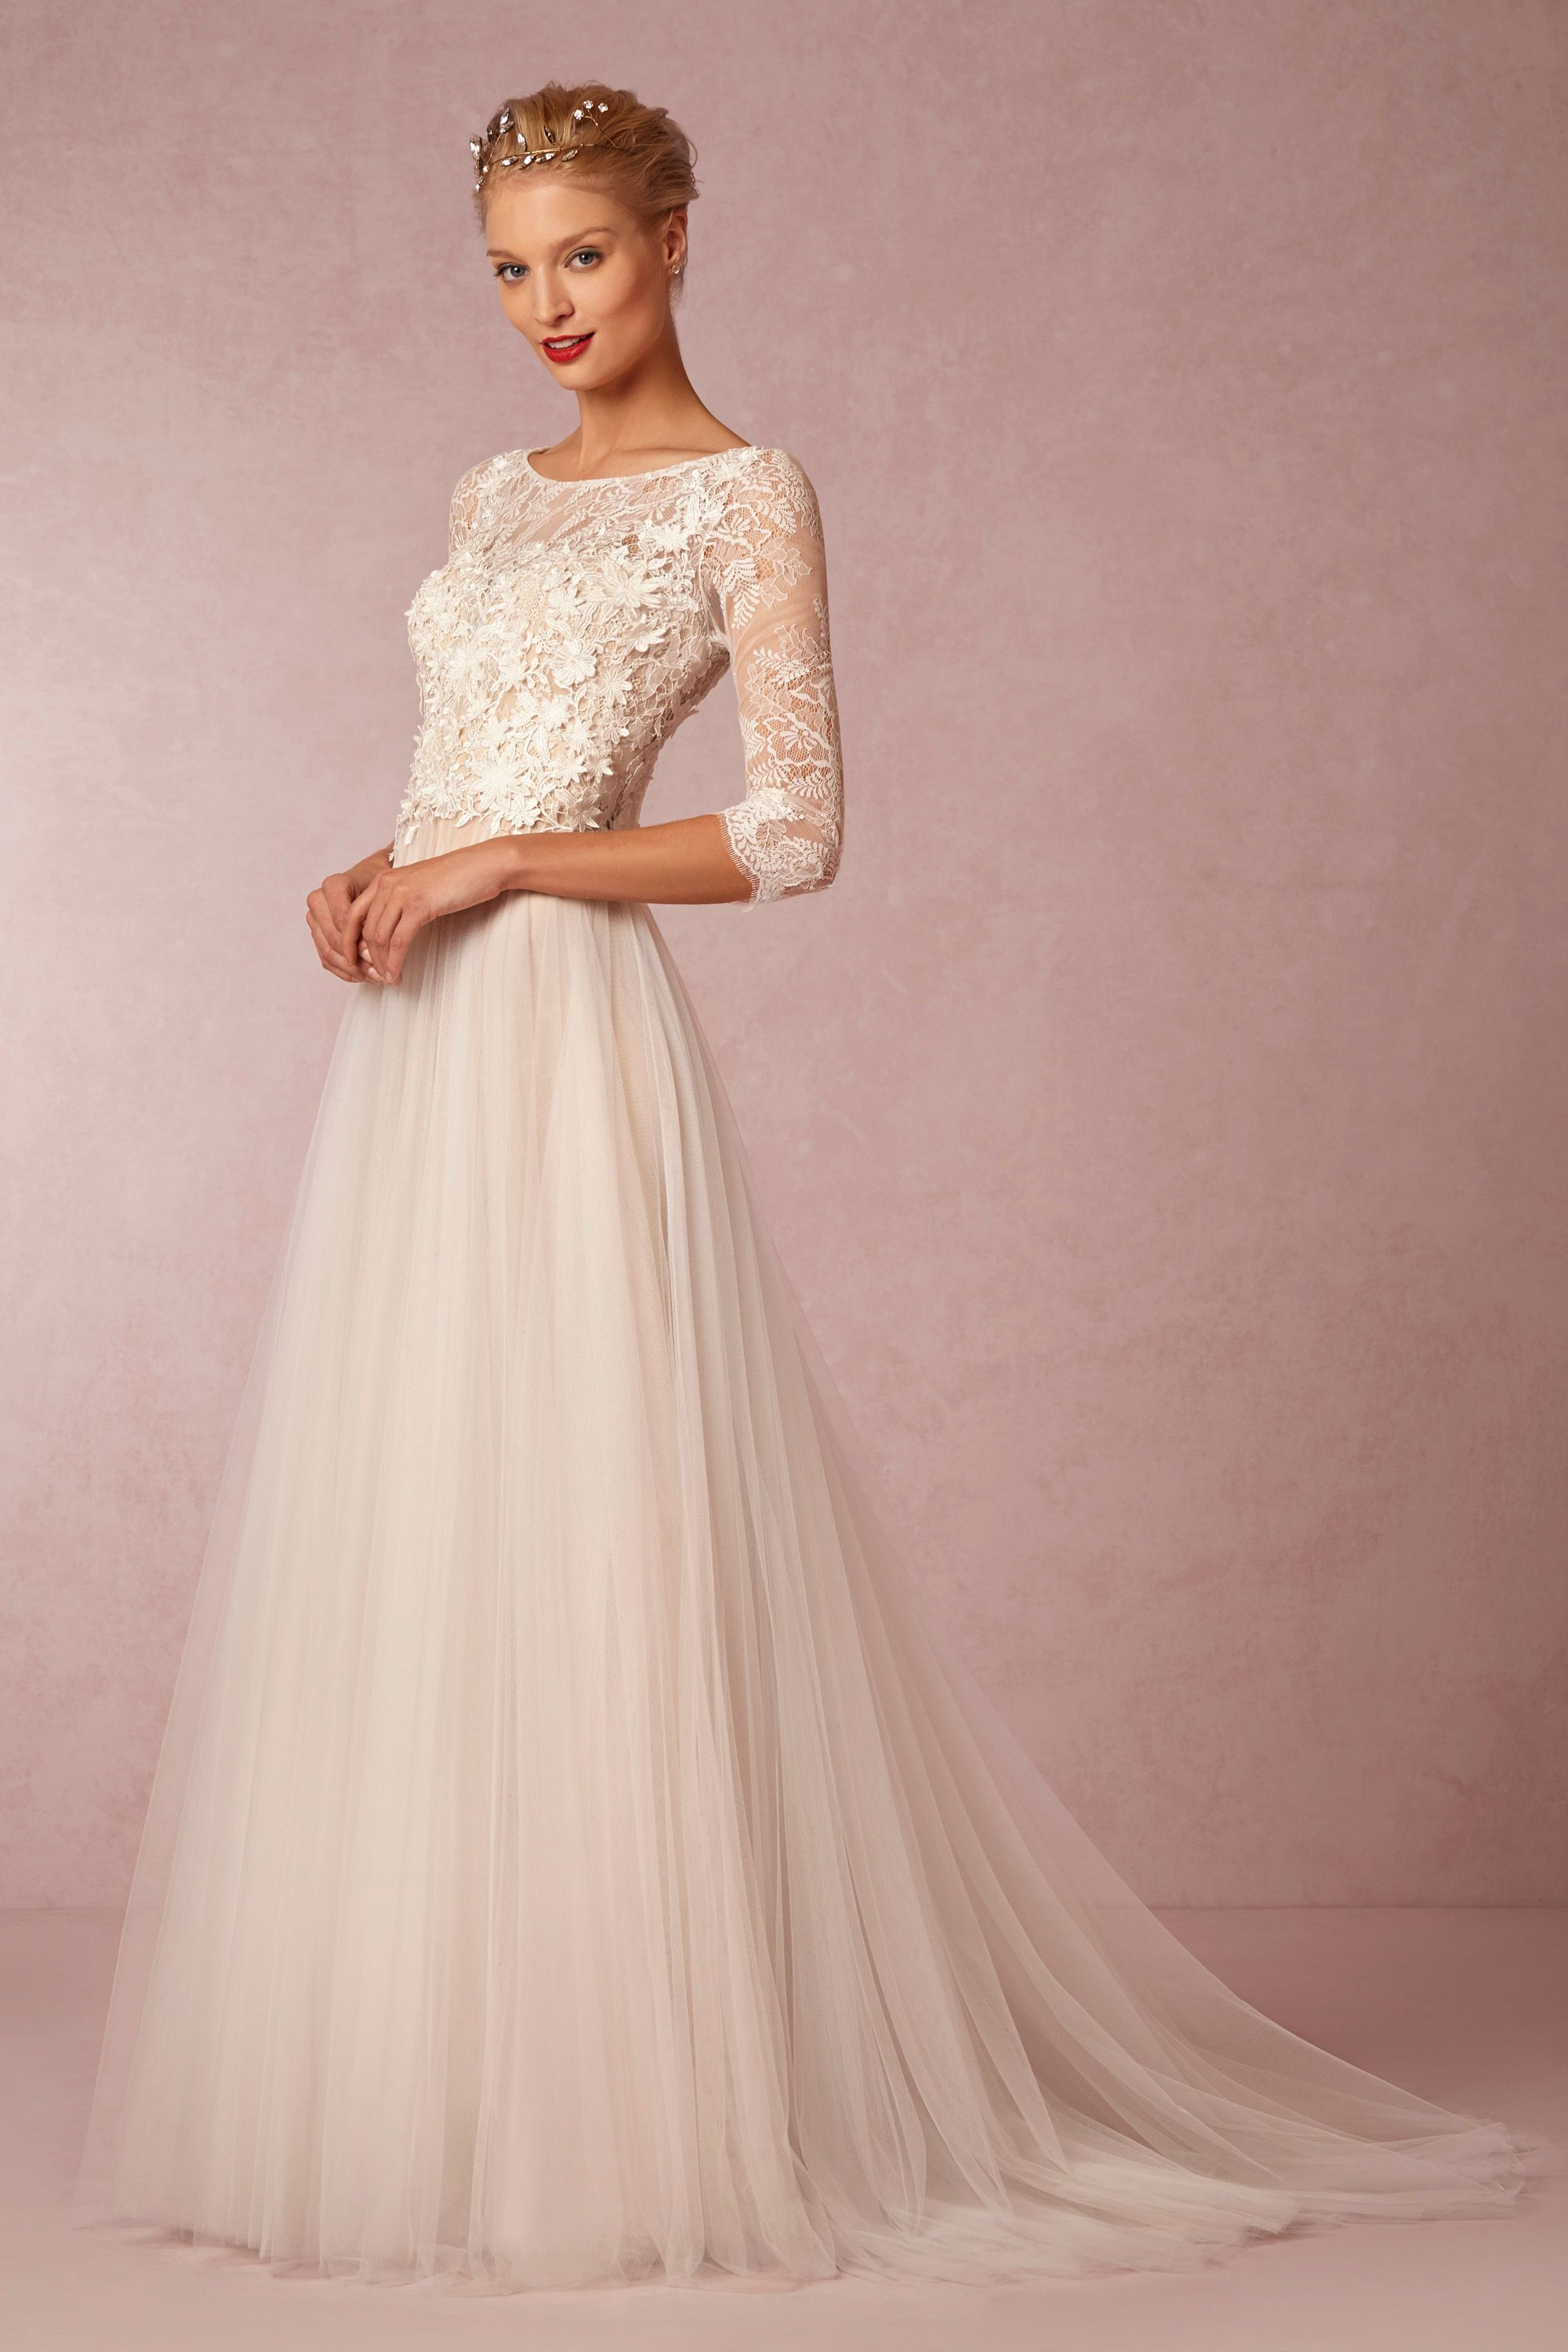 Amelie Gown from @BHLDN | Novia | Pinterest | Novios, Vestidos de ...